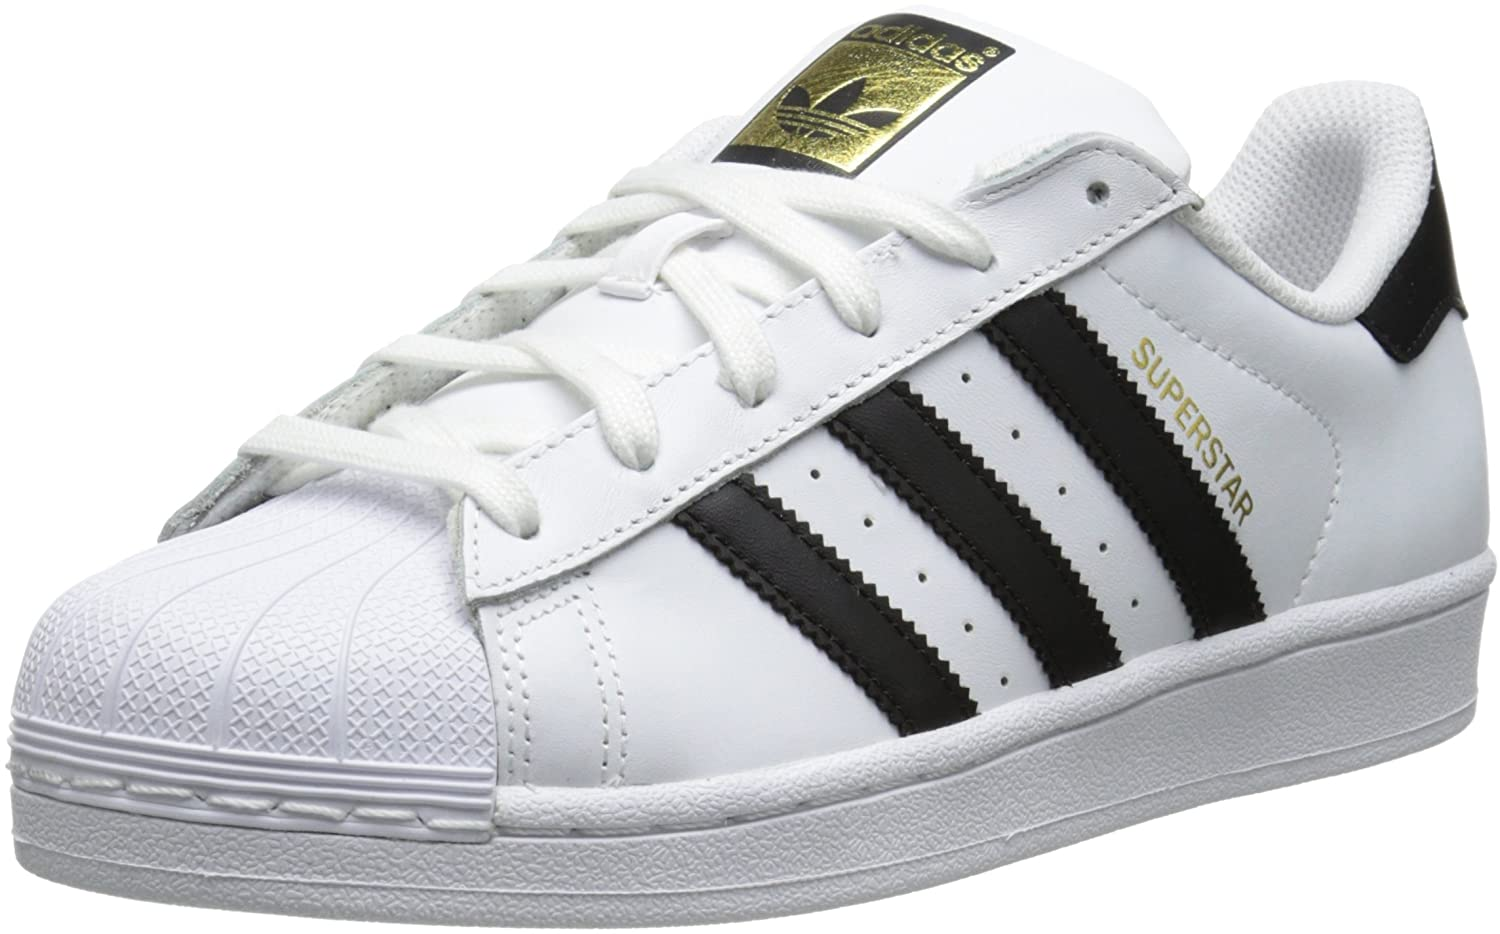 a3f362cee adidas superstar white,adidas zx > OFF41% Free shipping!